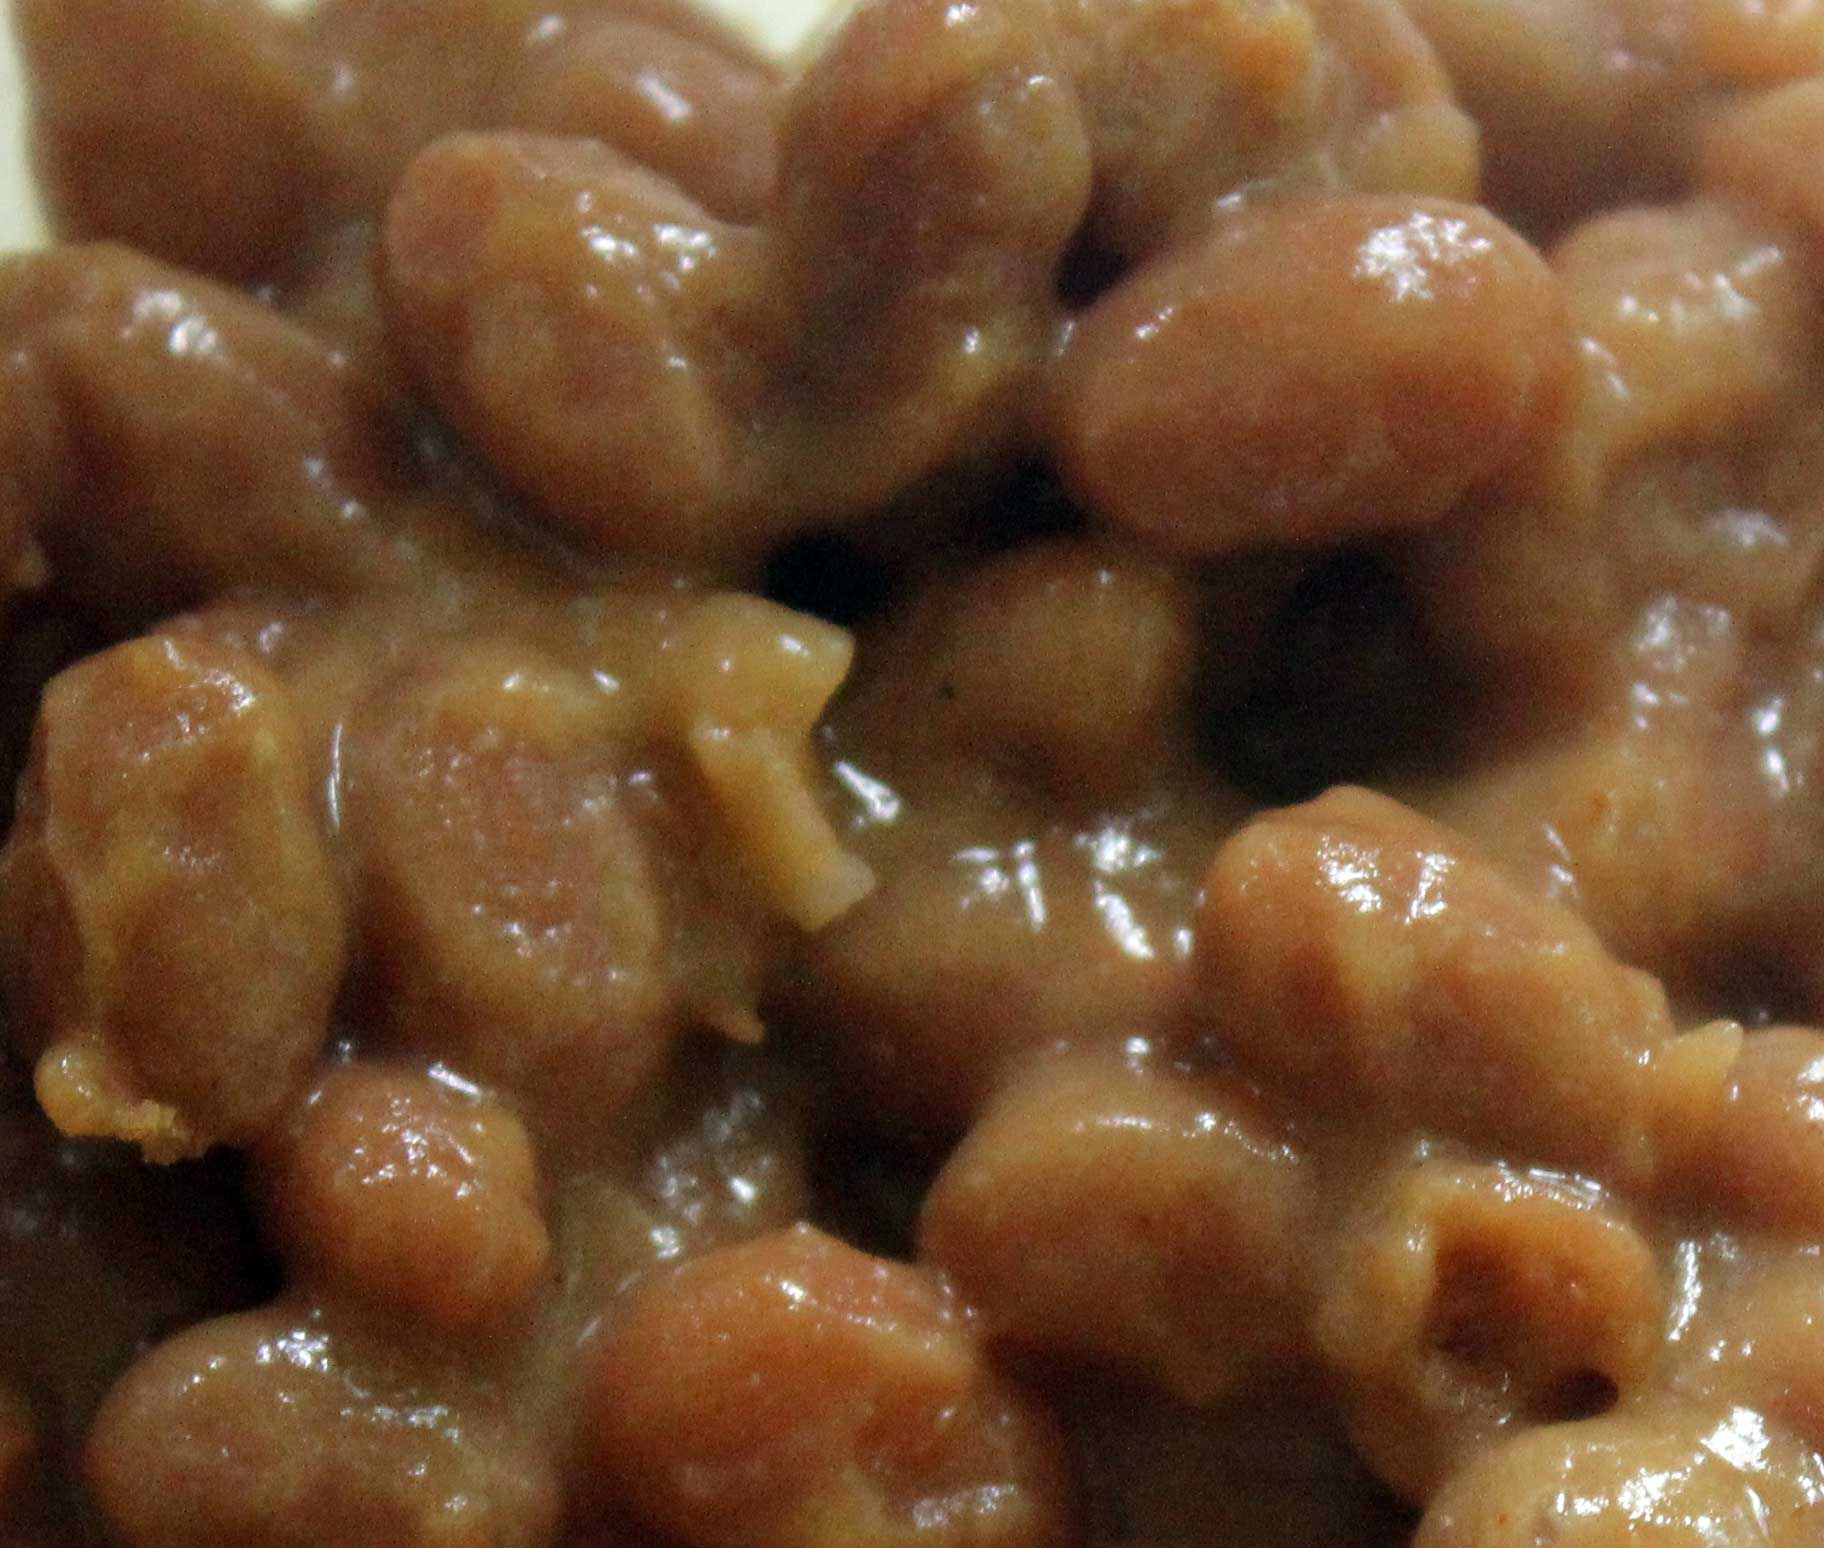 TBT Recipe: Virgil's Hickory Pit Baked Beans